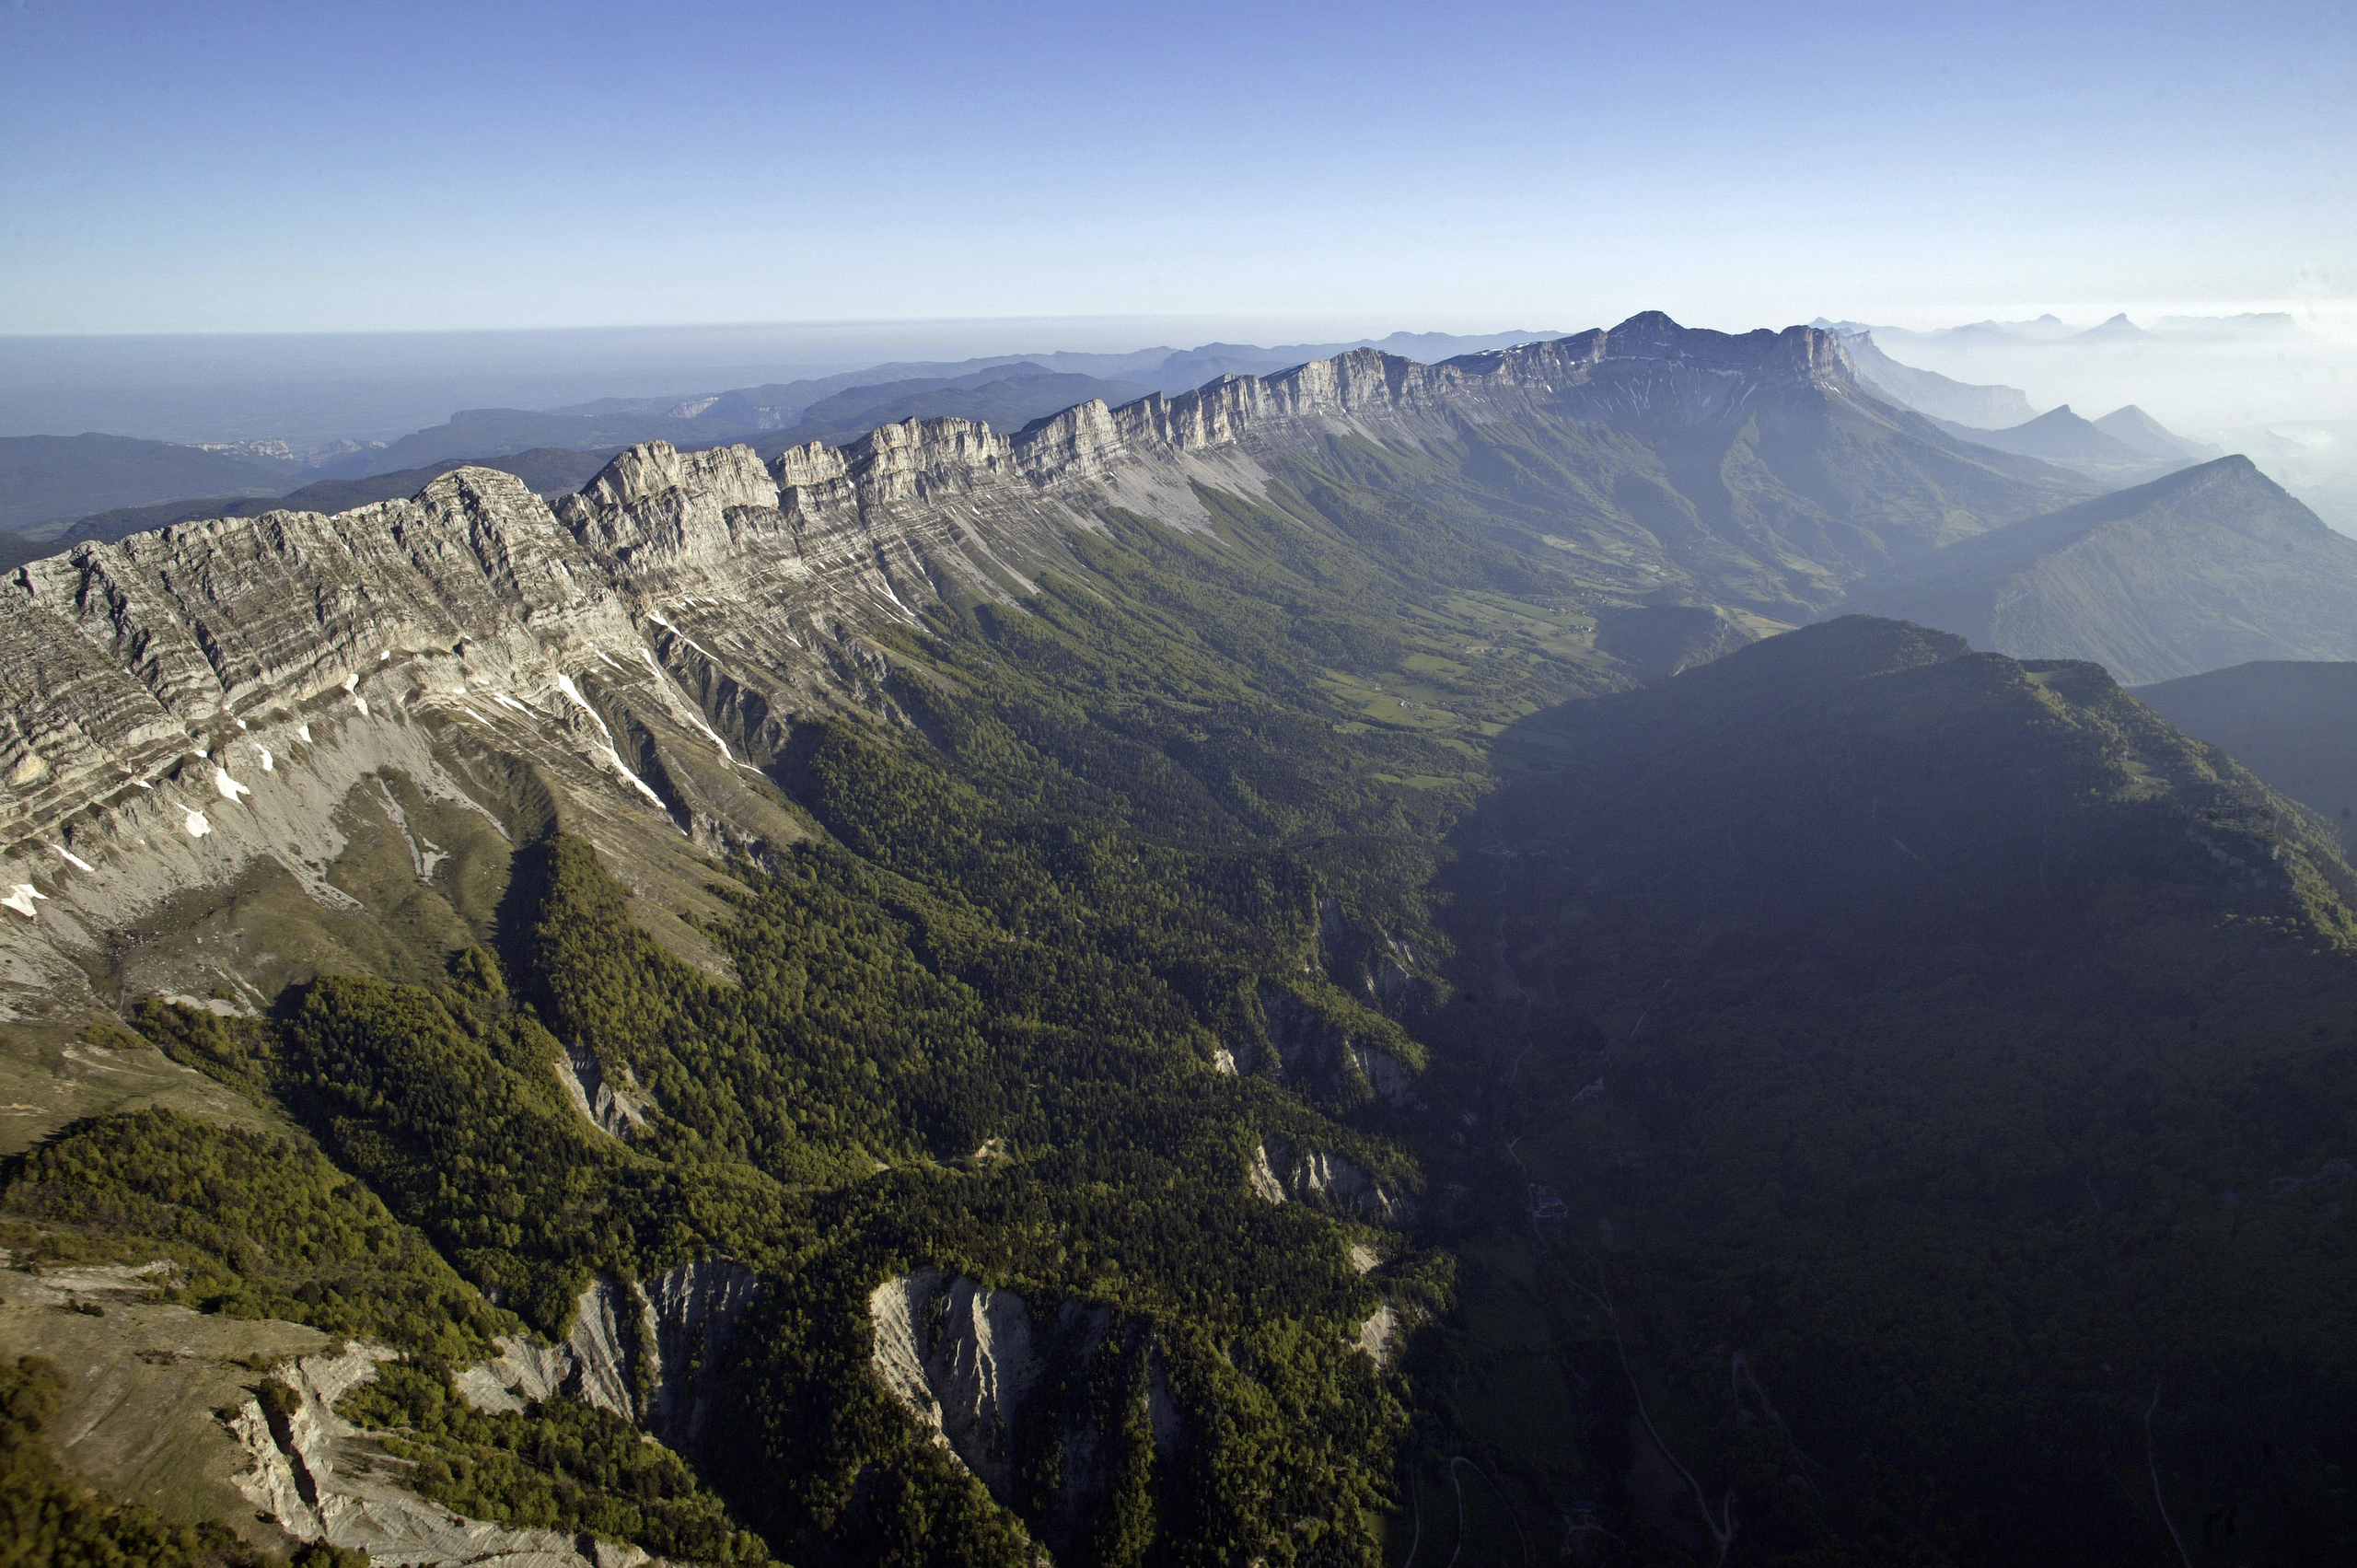 Vercors Massif, Vercors Regional Natural Park, France. This park contains the French Western Alps and covers 135,000 hectares. The limestone cliffs here are dotted with caves and were a base for the French Resistance during WWII.